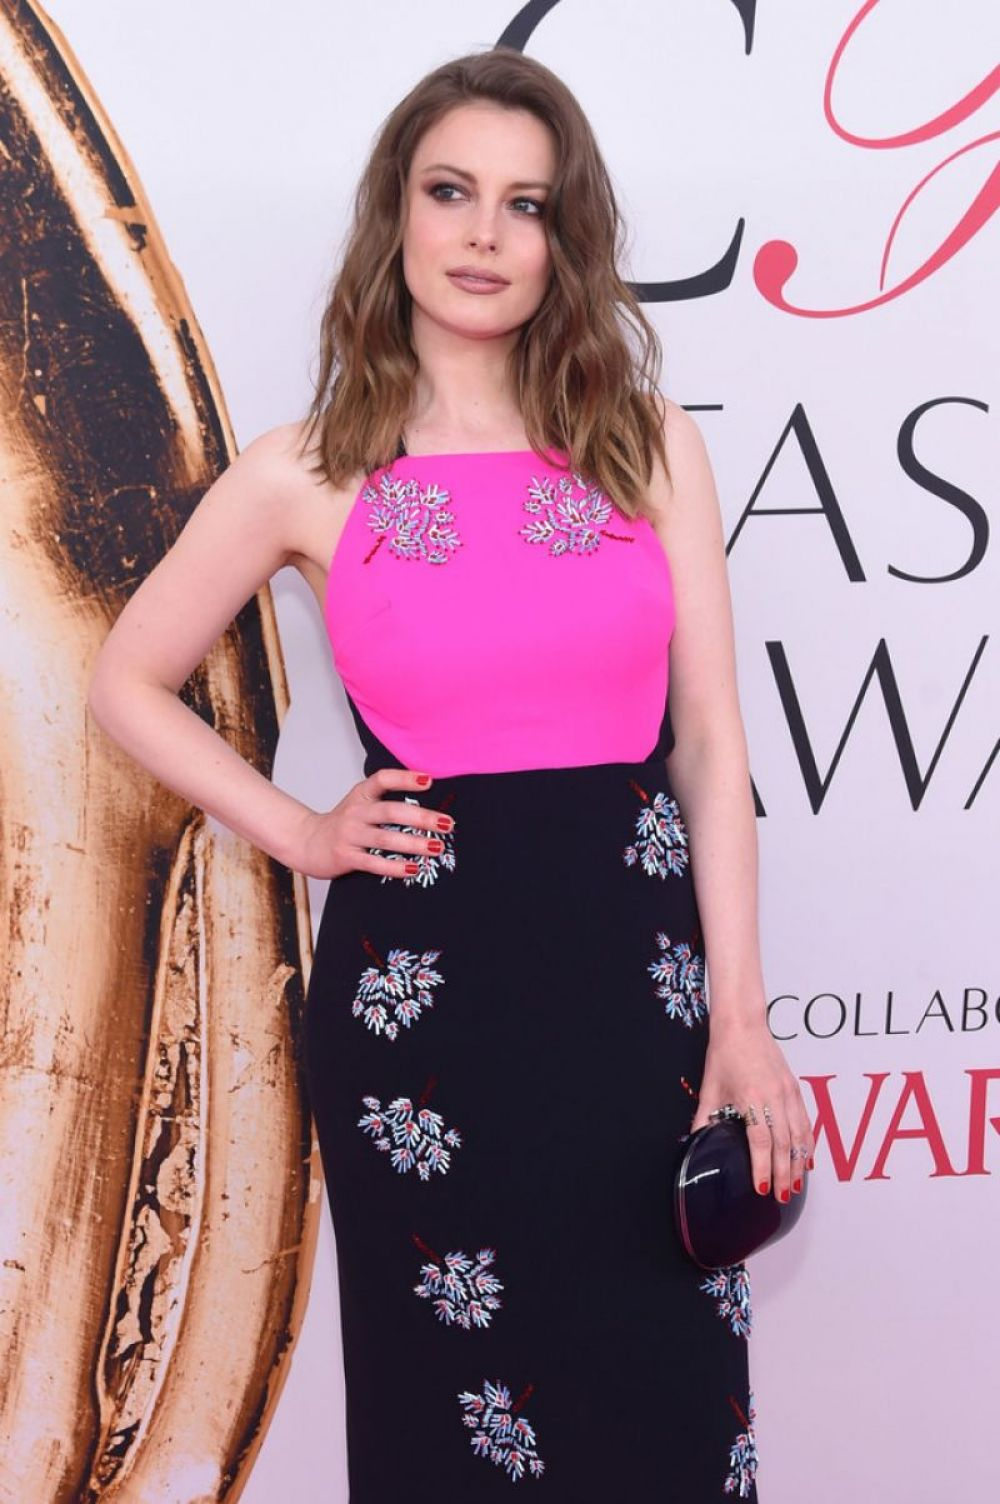 GILLIAN JACOBS at CFDA Fashion Awards in New York 06/06/2016